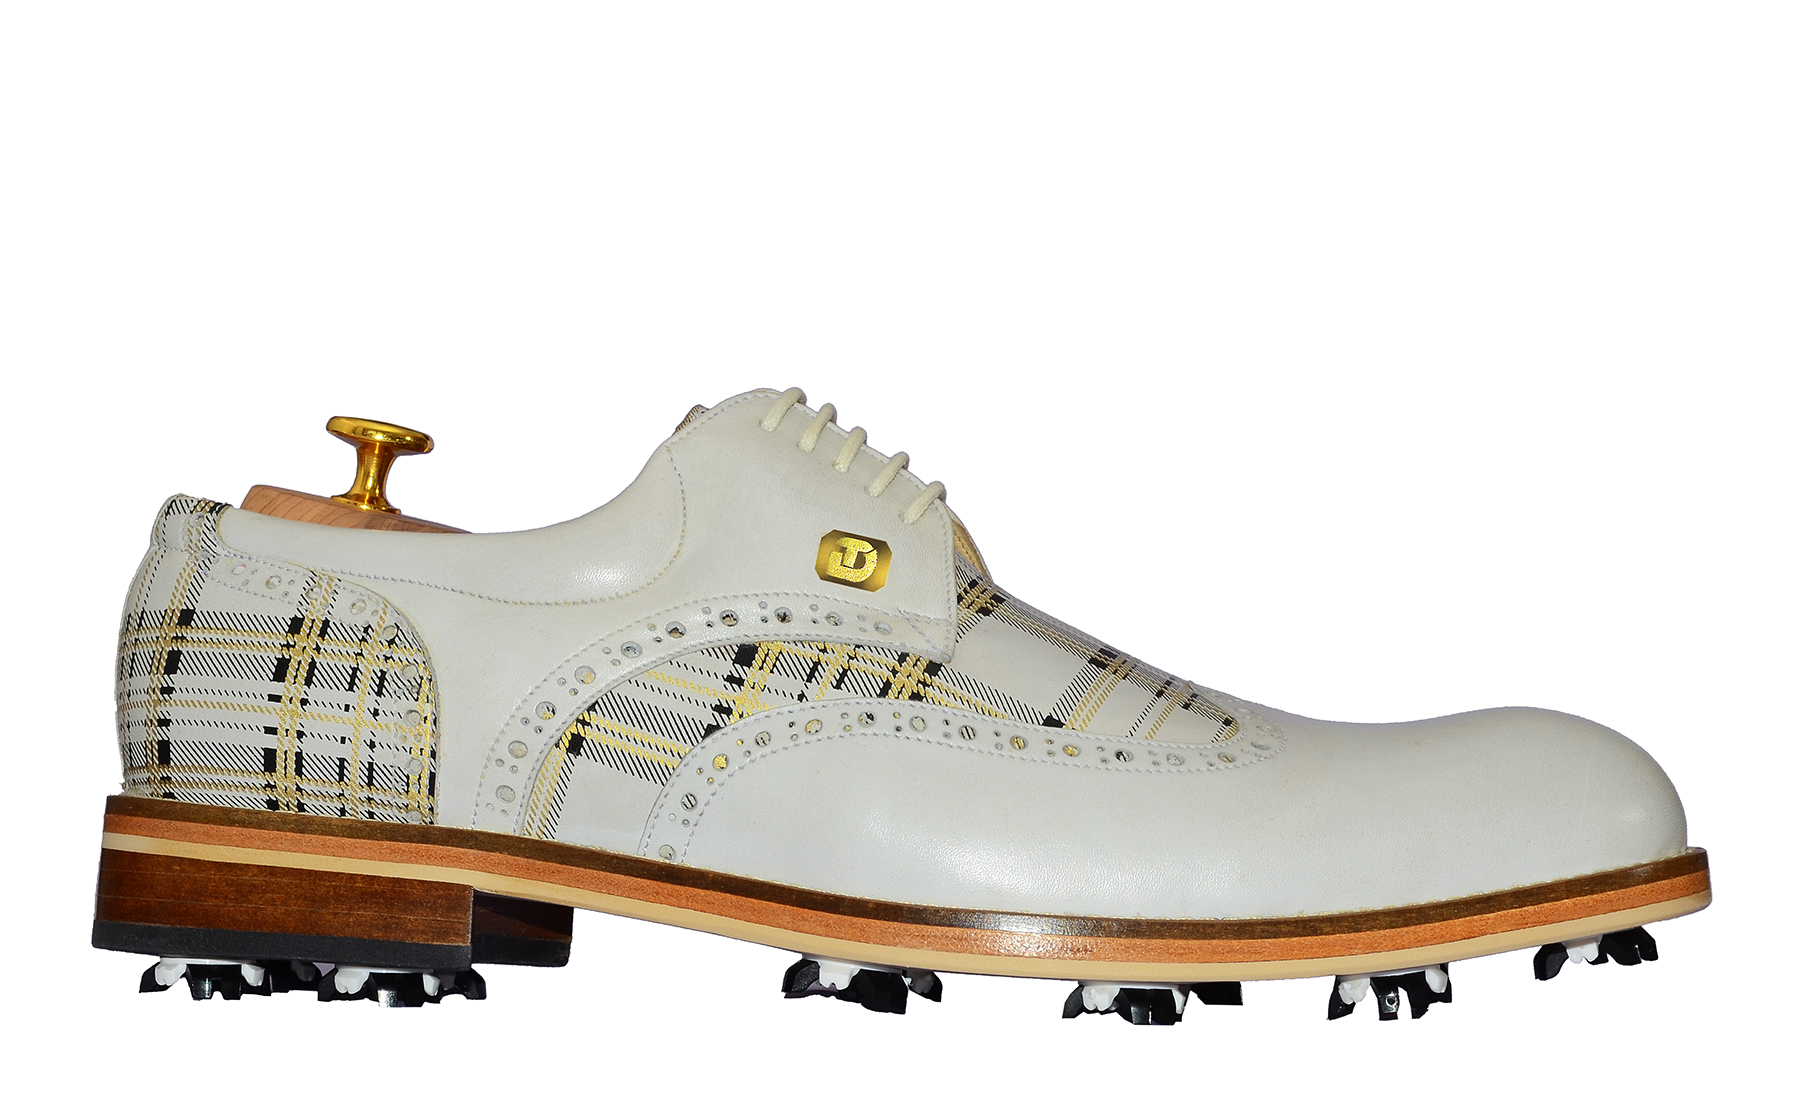 Classic Golf Shoes